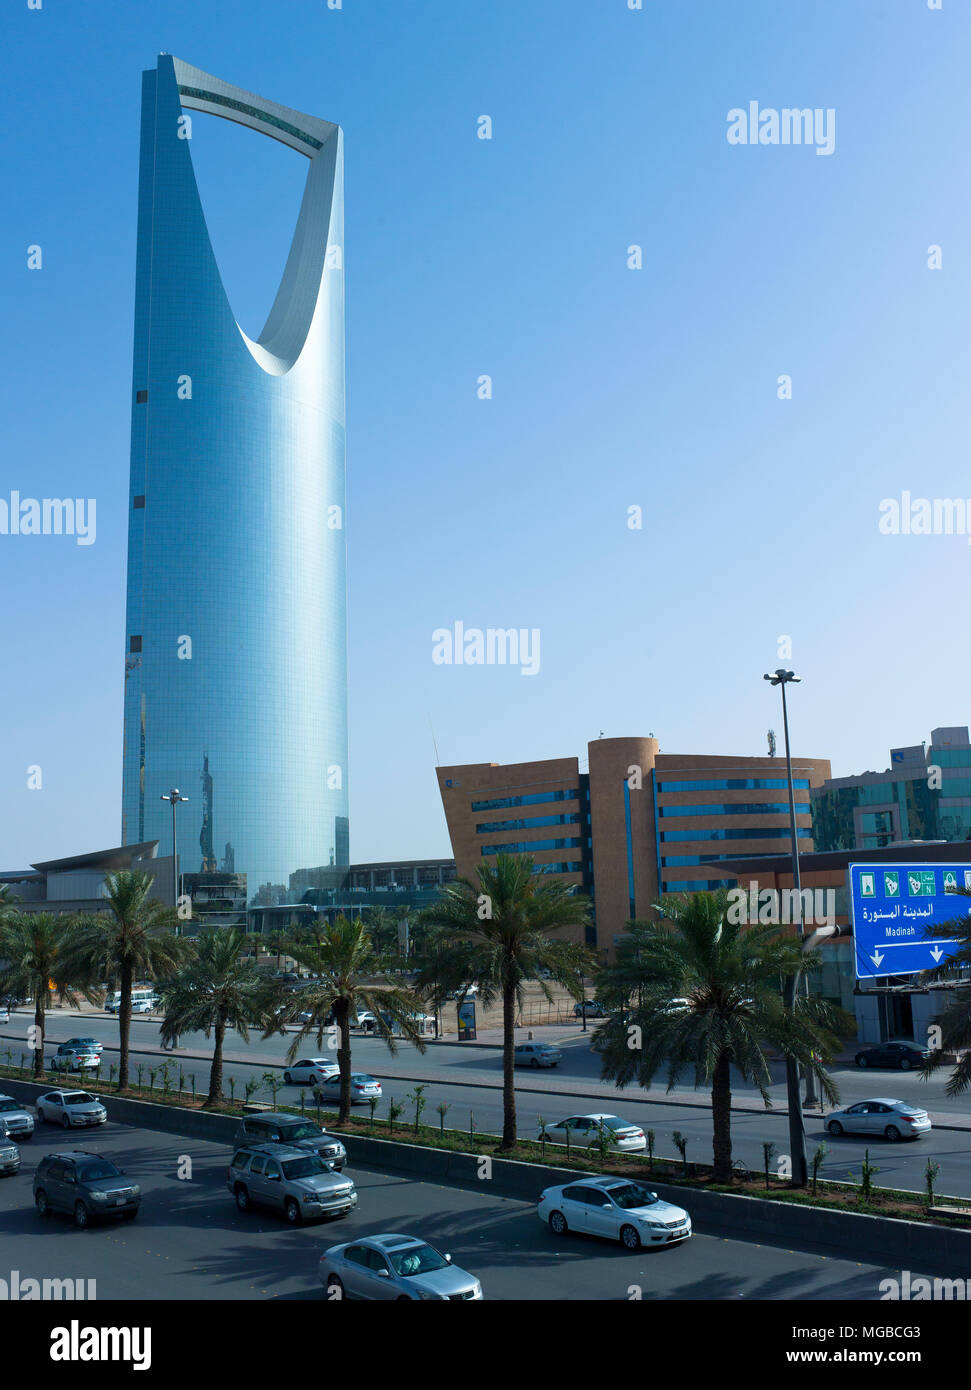 This April Only Around One Million Foreign Workers Have Left Saudi Arabia For Good, Which Explains This Light Traffic on King Fahad Road Early in The  - Stock Image